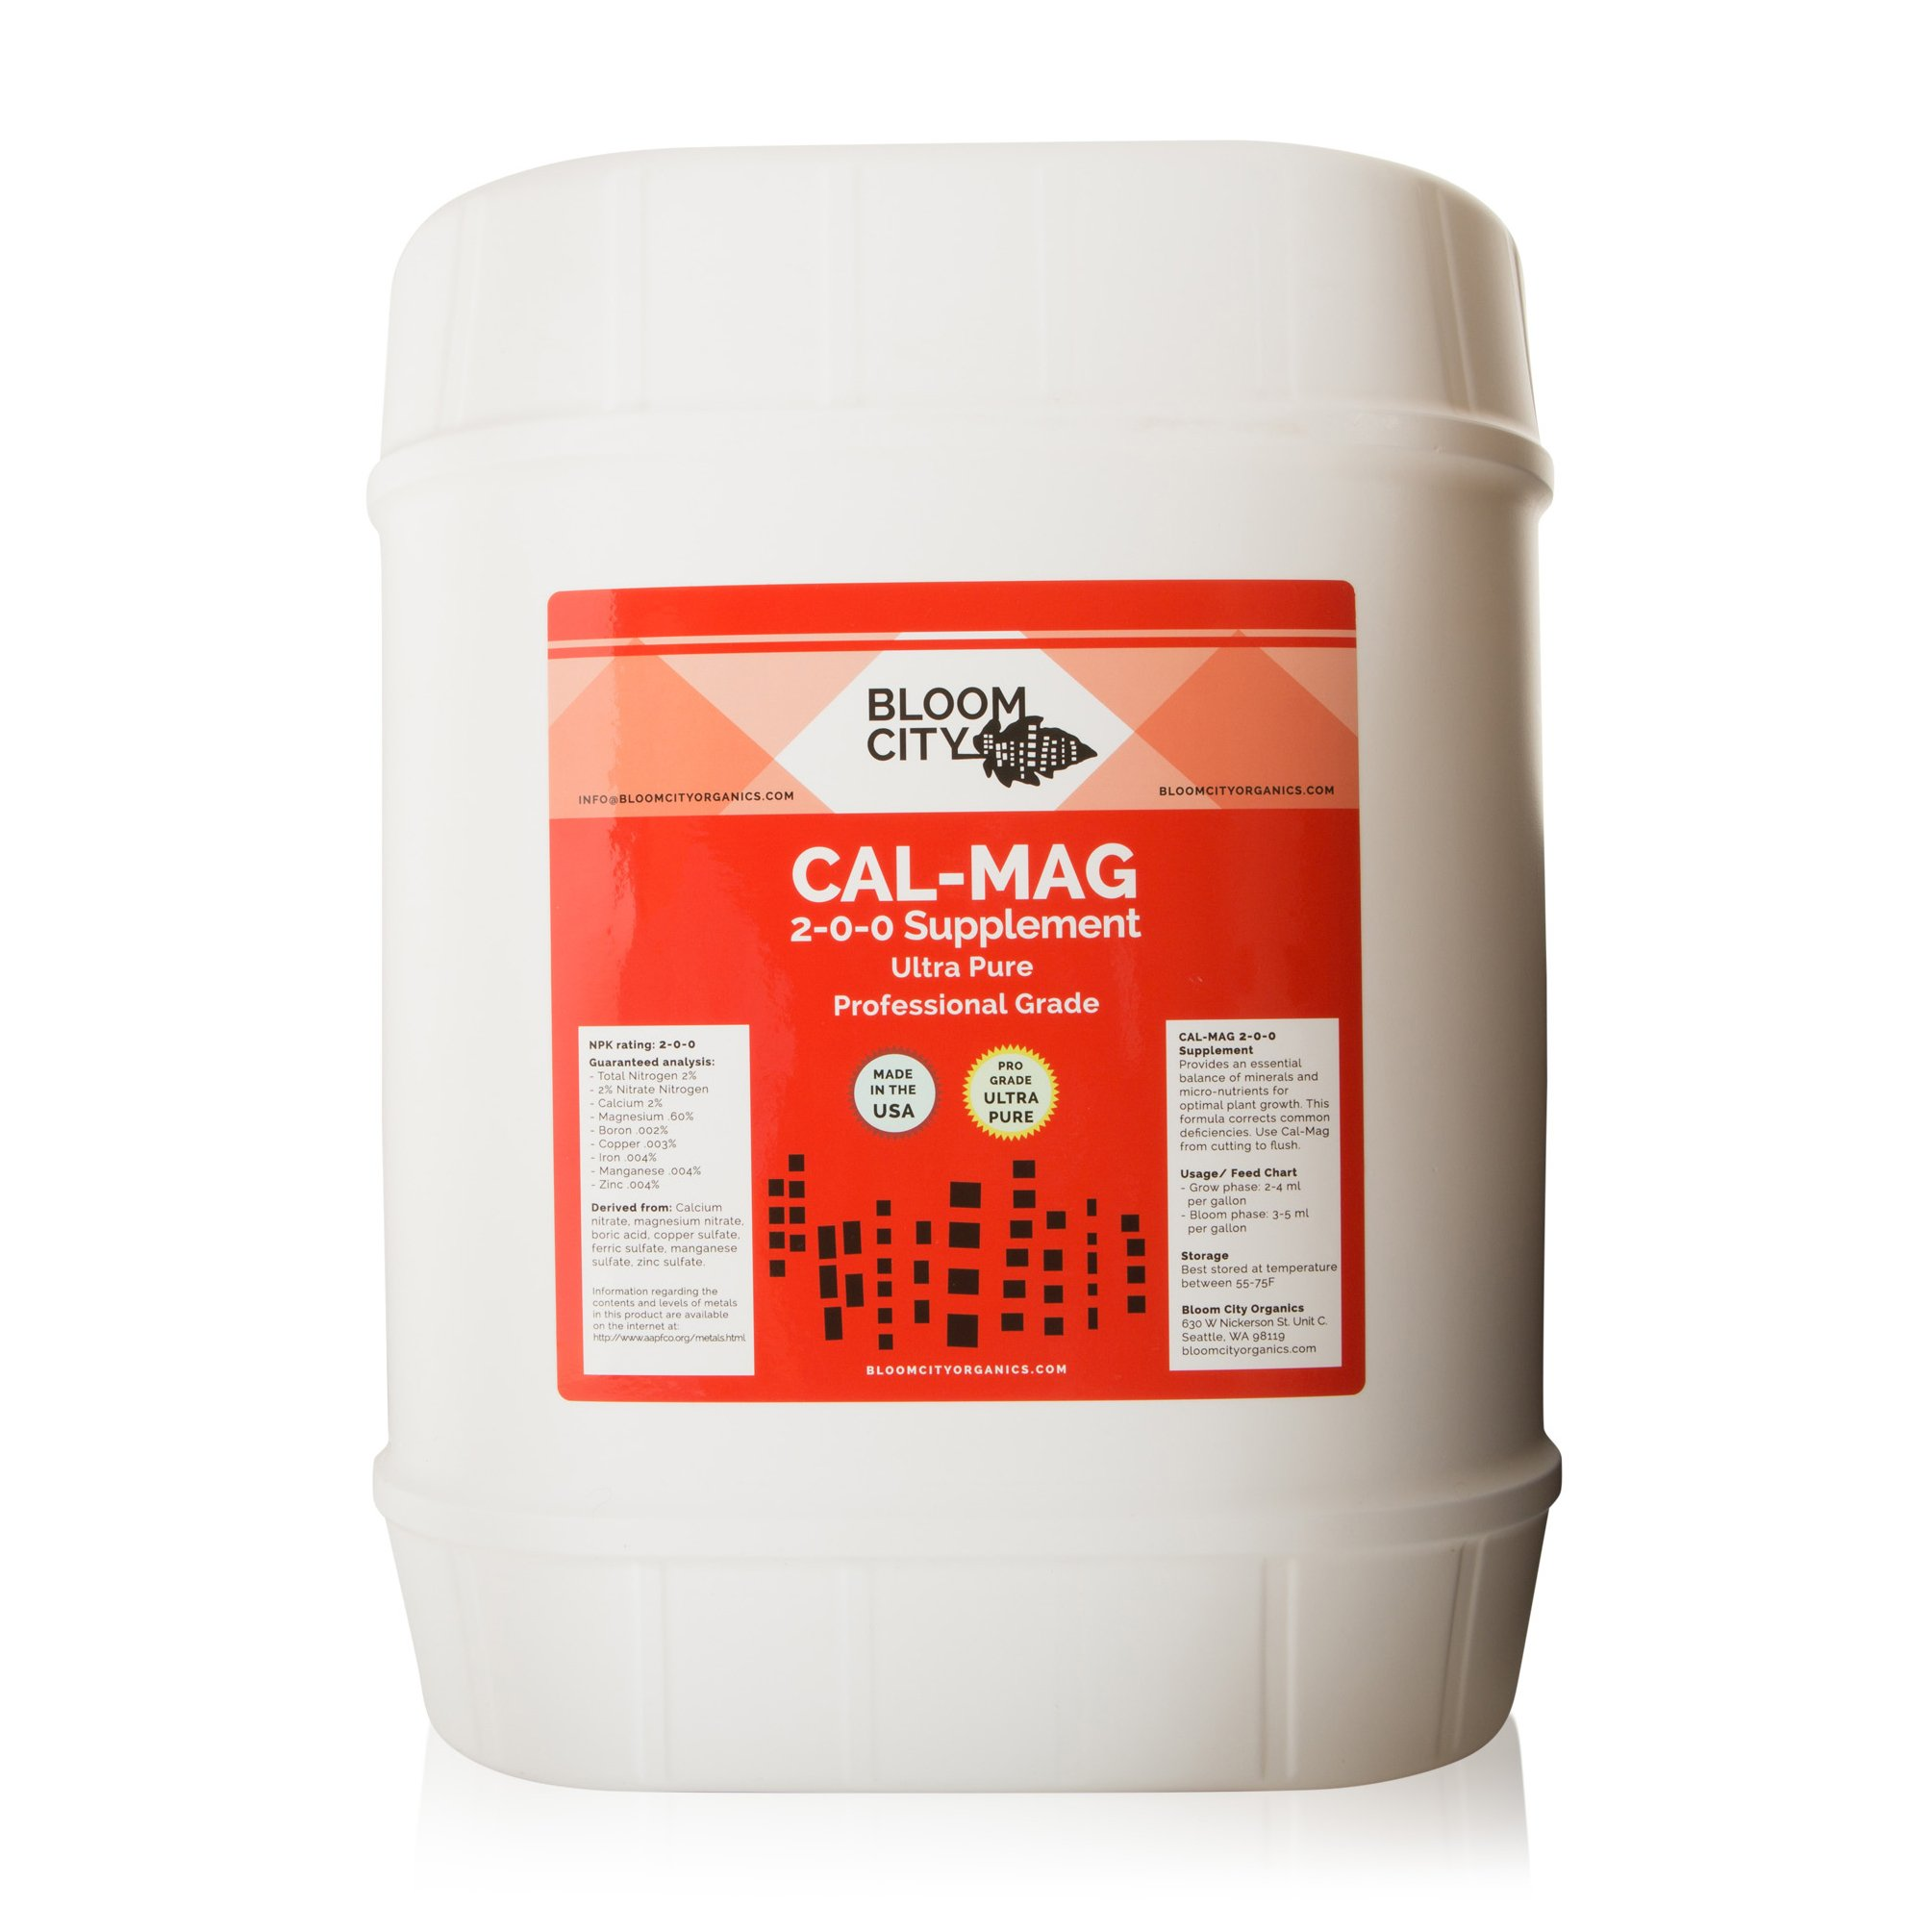 Bloom City Professional Grade Ultra Pure Cal-Mag Growing Supplement 5 Gallon (640 oz) by Bloom City